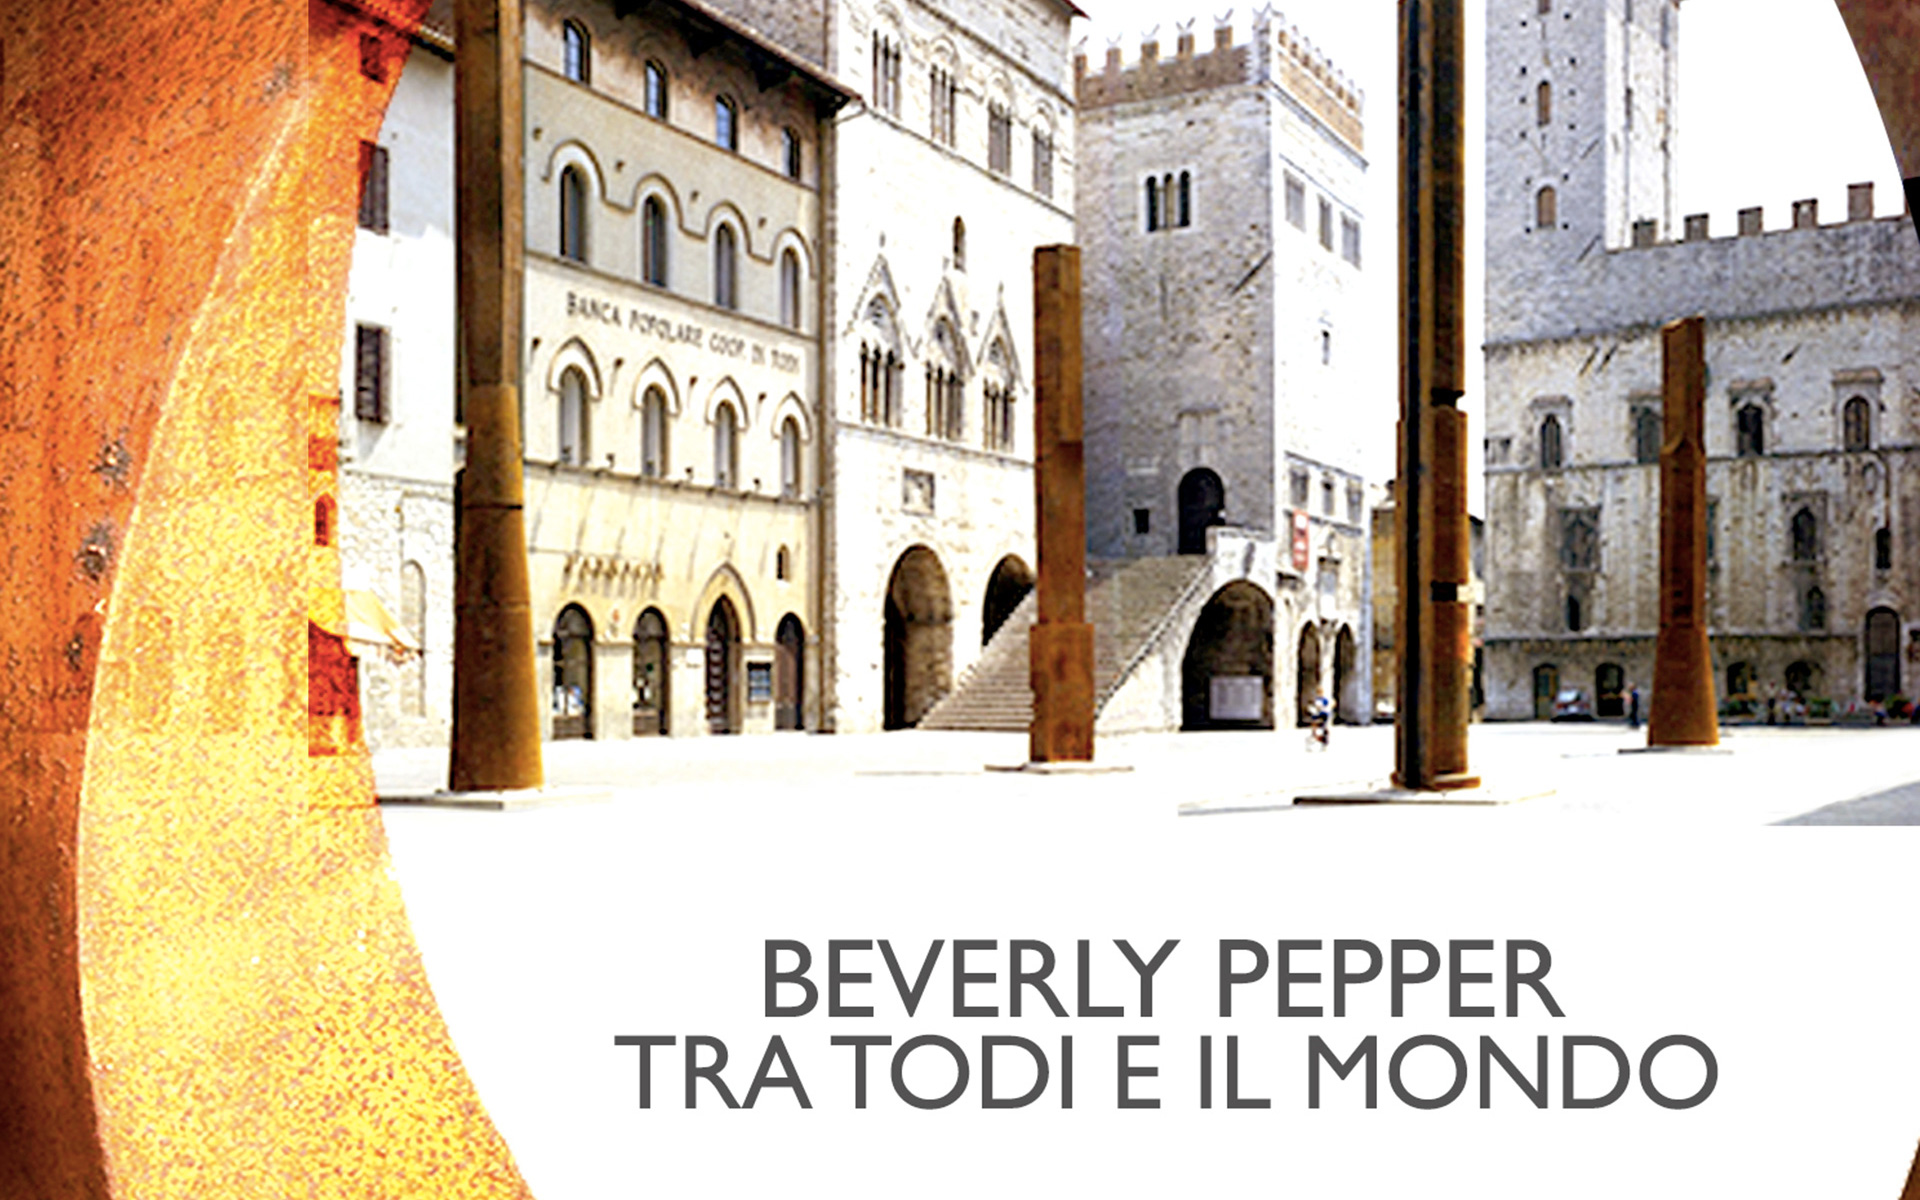 Beverly-pepper-press_tra-TODI-e-il-MONDO